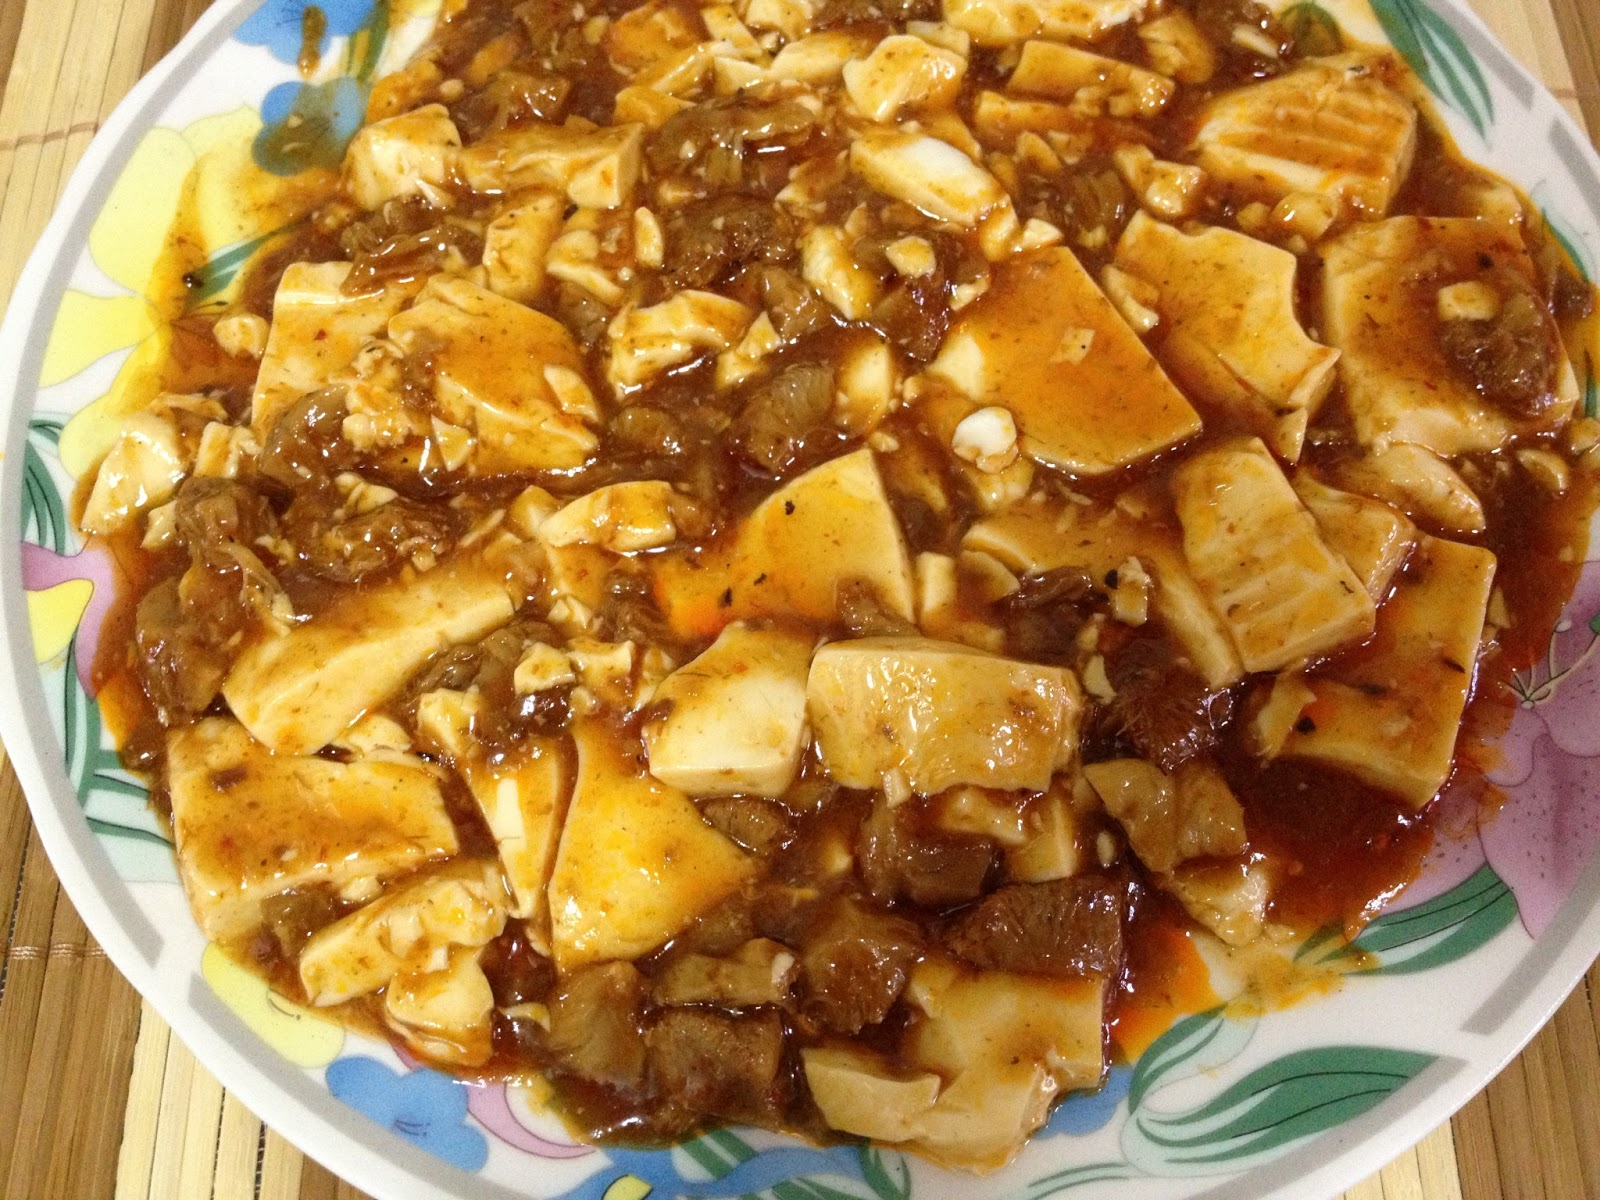 ... mapo chicken mapo eggplant mapo tofu recipe the best mapo tofu recipe